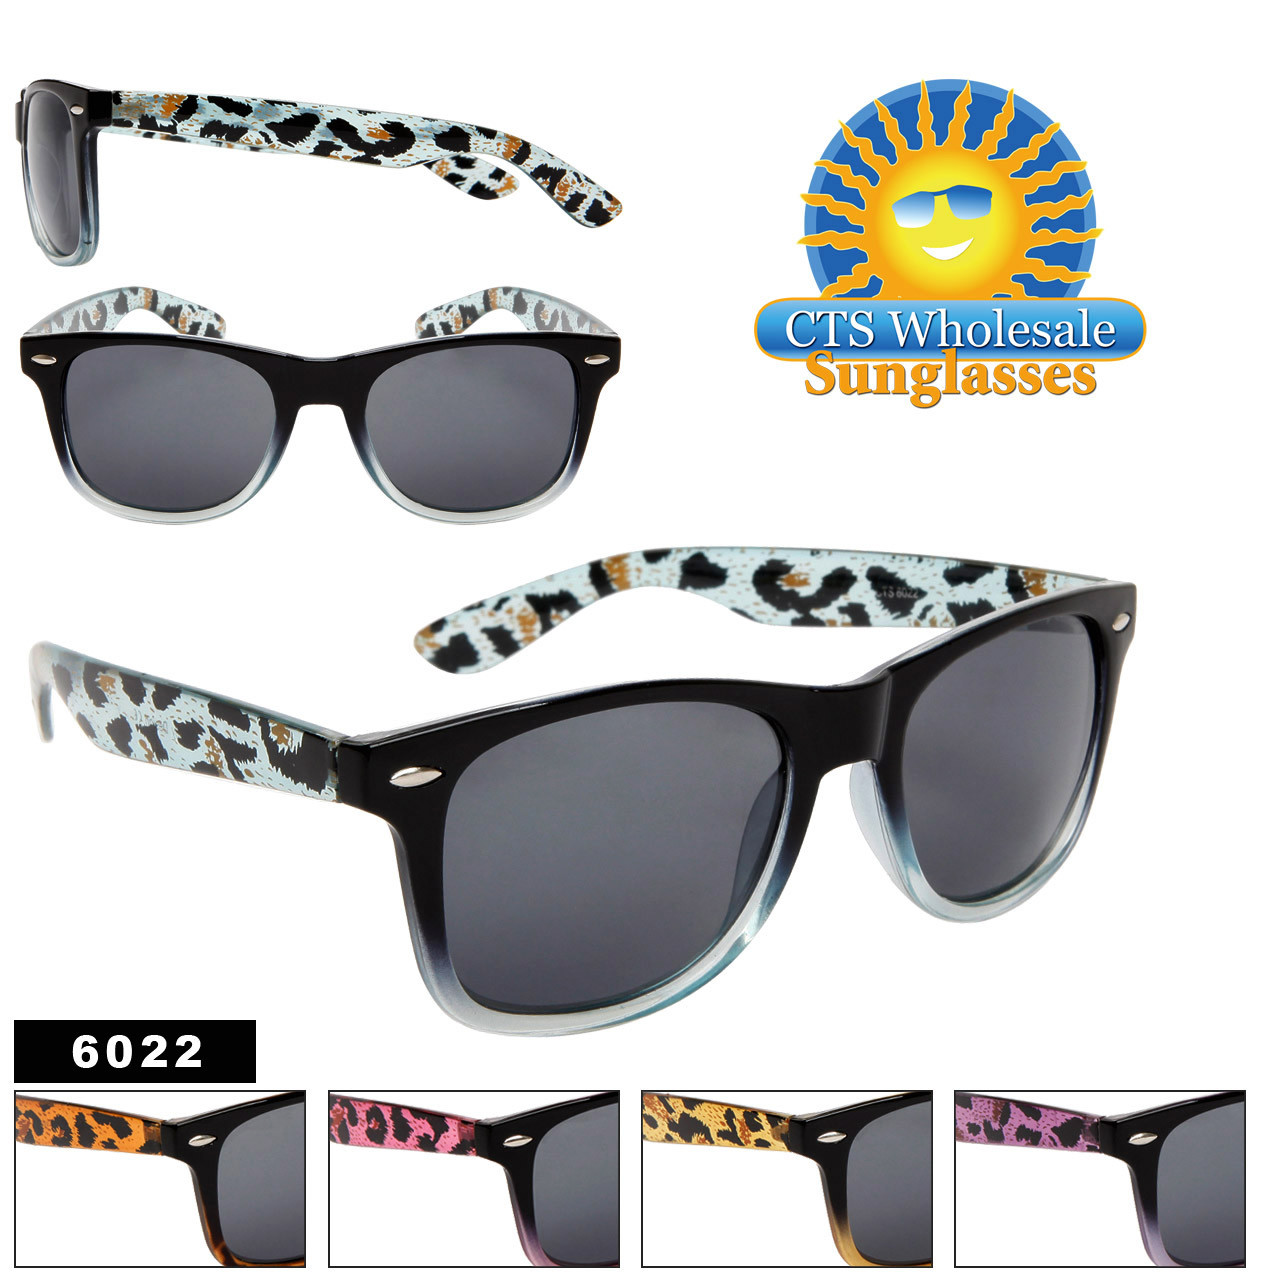 California Classics Sunglasses 6022 Animal Print Patterns (Assorted Colors) (12 pcs.)